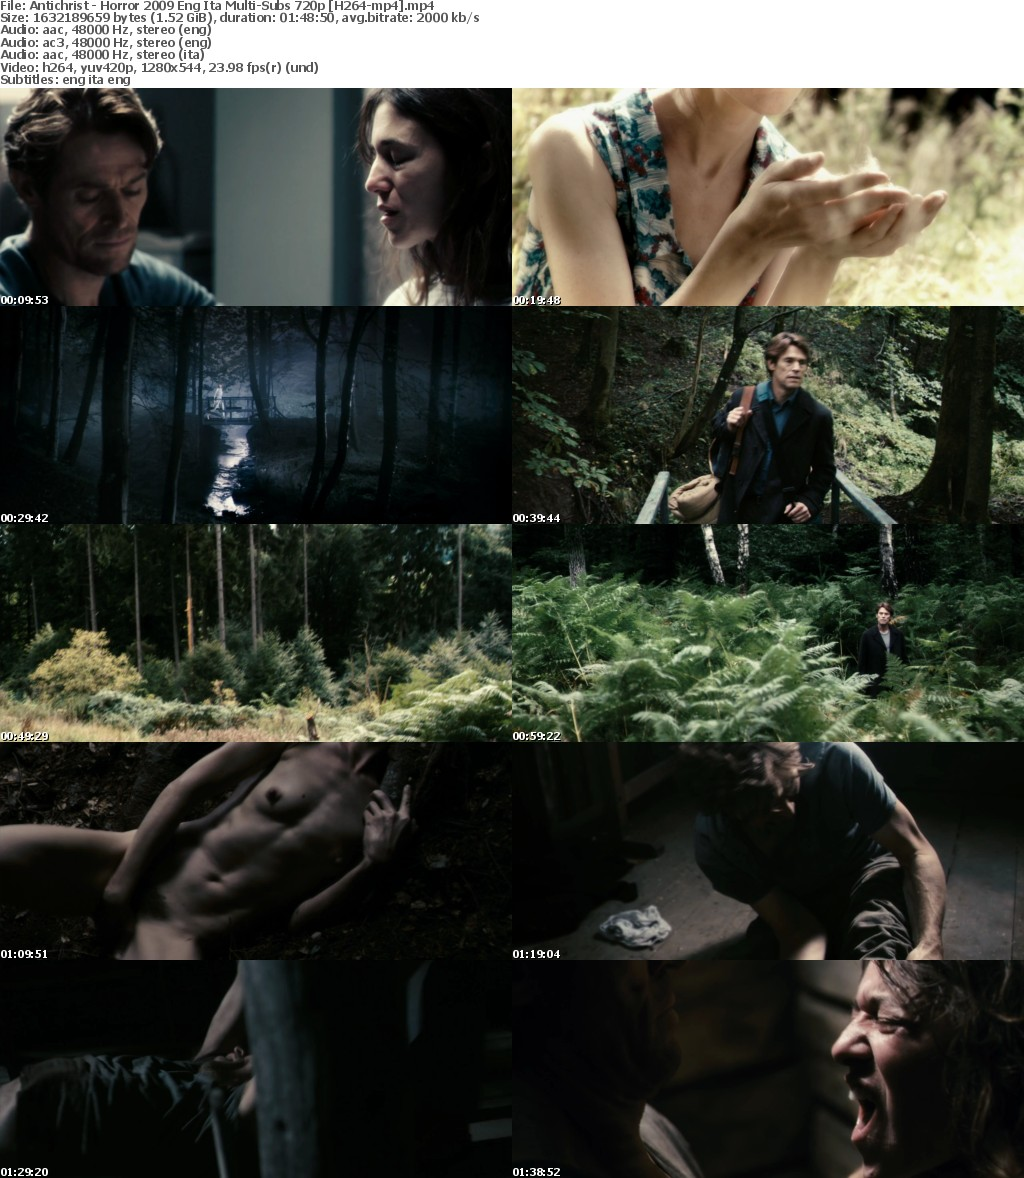 Antichrist - Rated X or NC Horror 2009 Eng Ita Multi-Subs 720p H264-mp4